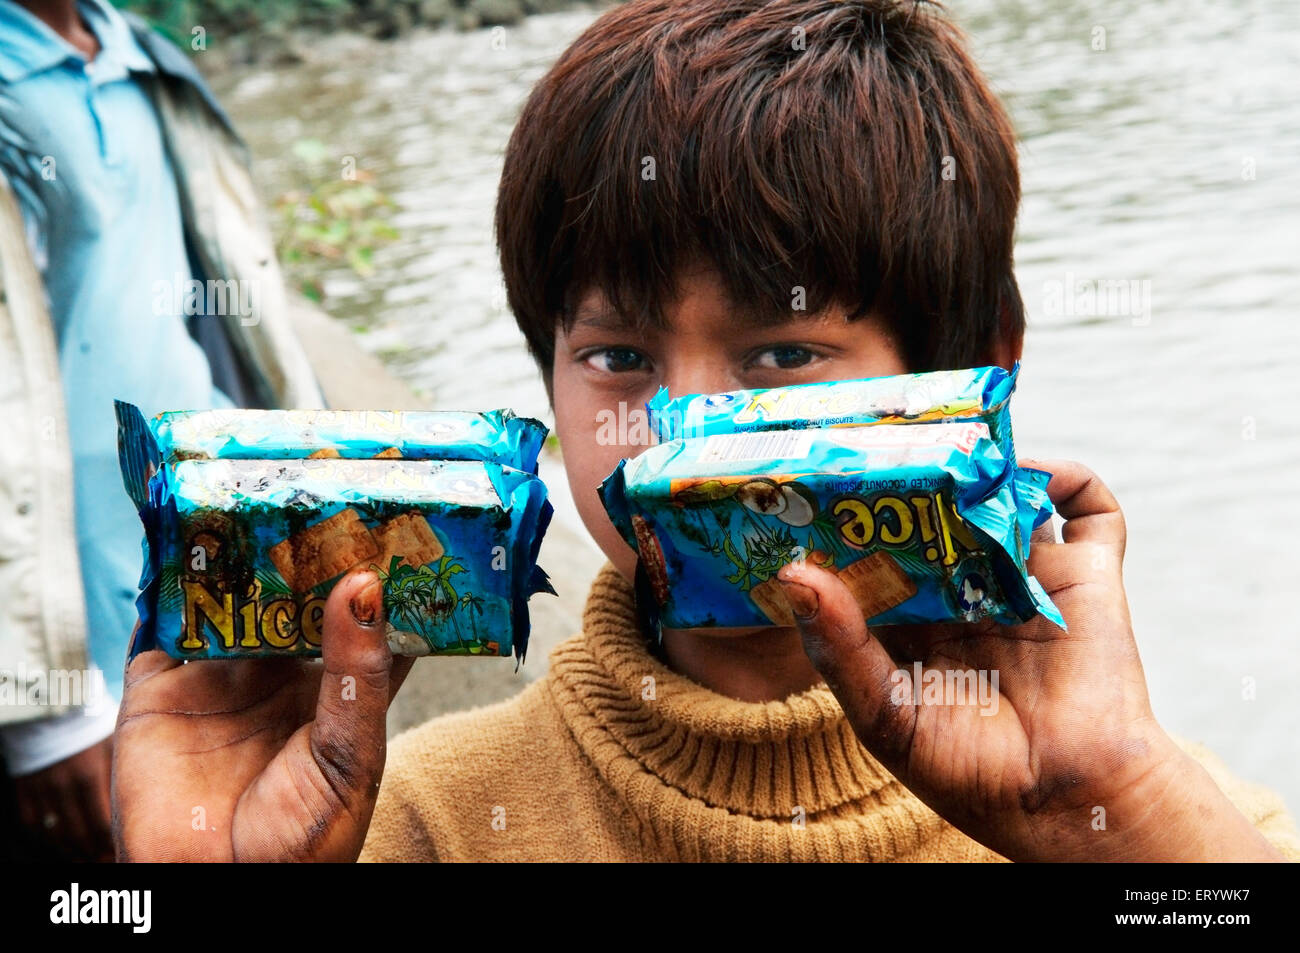 Boy showing oil soaked biscuit packets due to container ship chitra colliding in sea Mumbai ; Maharashtra - Stock Image